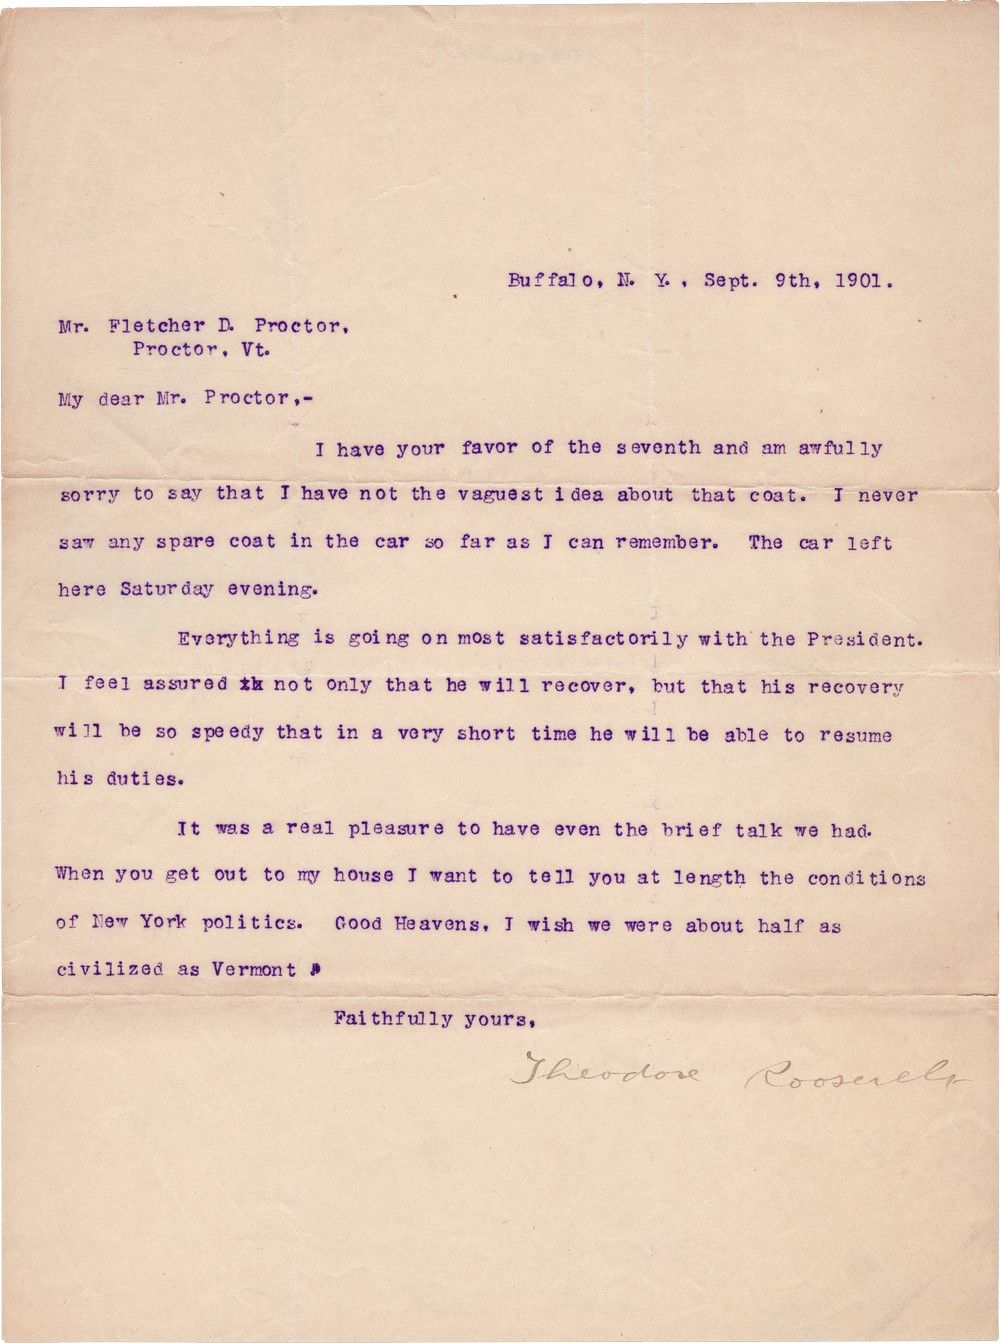 Theodore Roosevelt Confidently Reports that the Mortally Wounded President McKinley is Doing Well